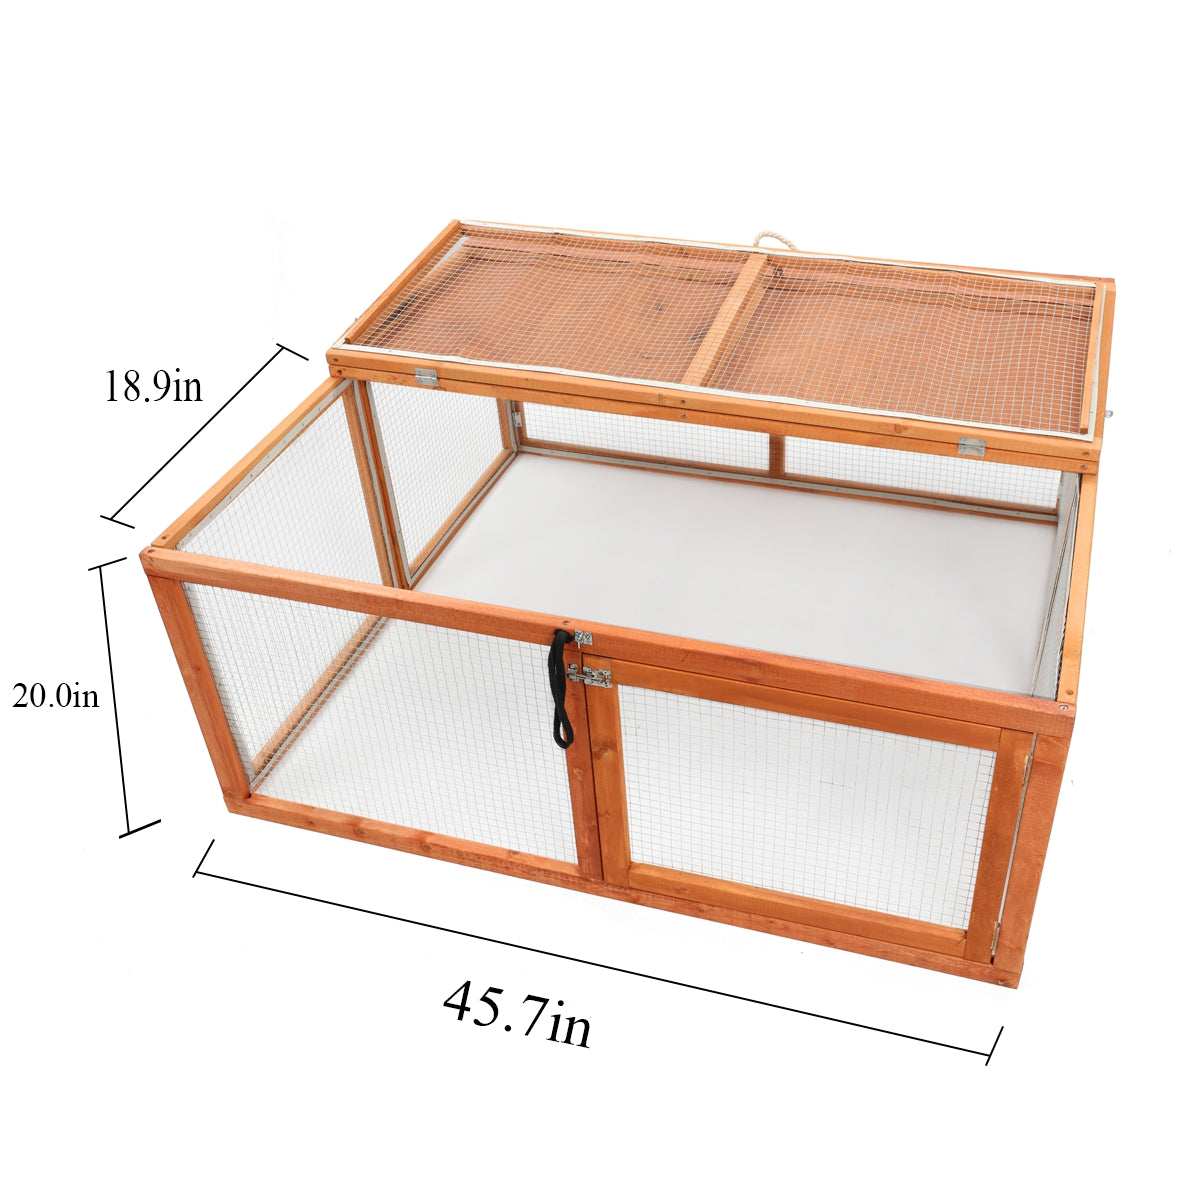 "45.7"" Foldable Chicken Coop Rabbit Bunny Hutch Hen House Poultry Cage Guinea Pig Pen"